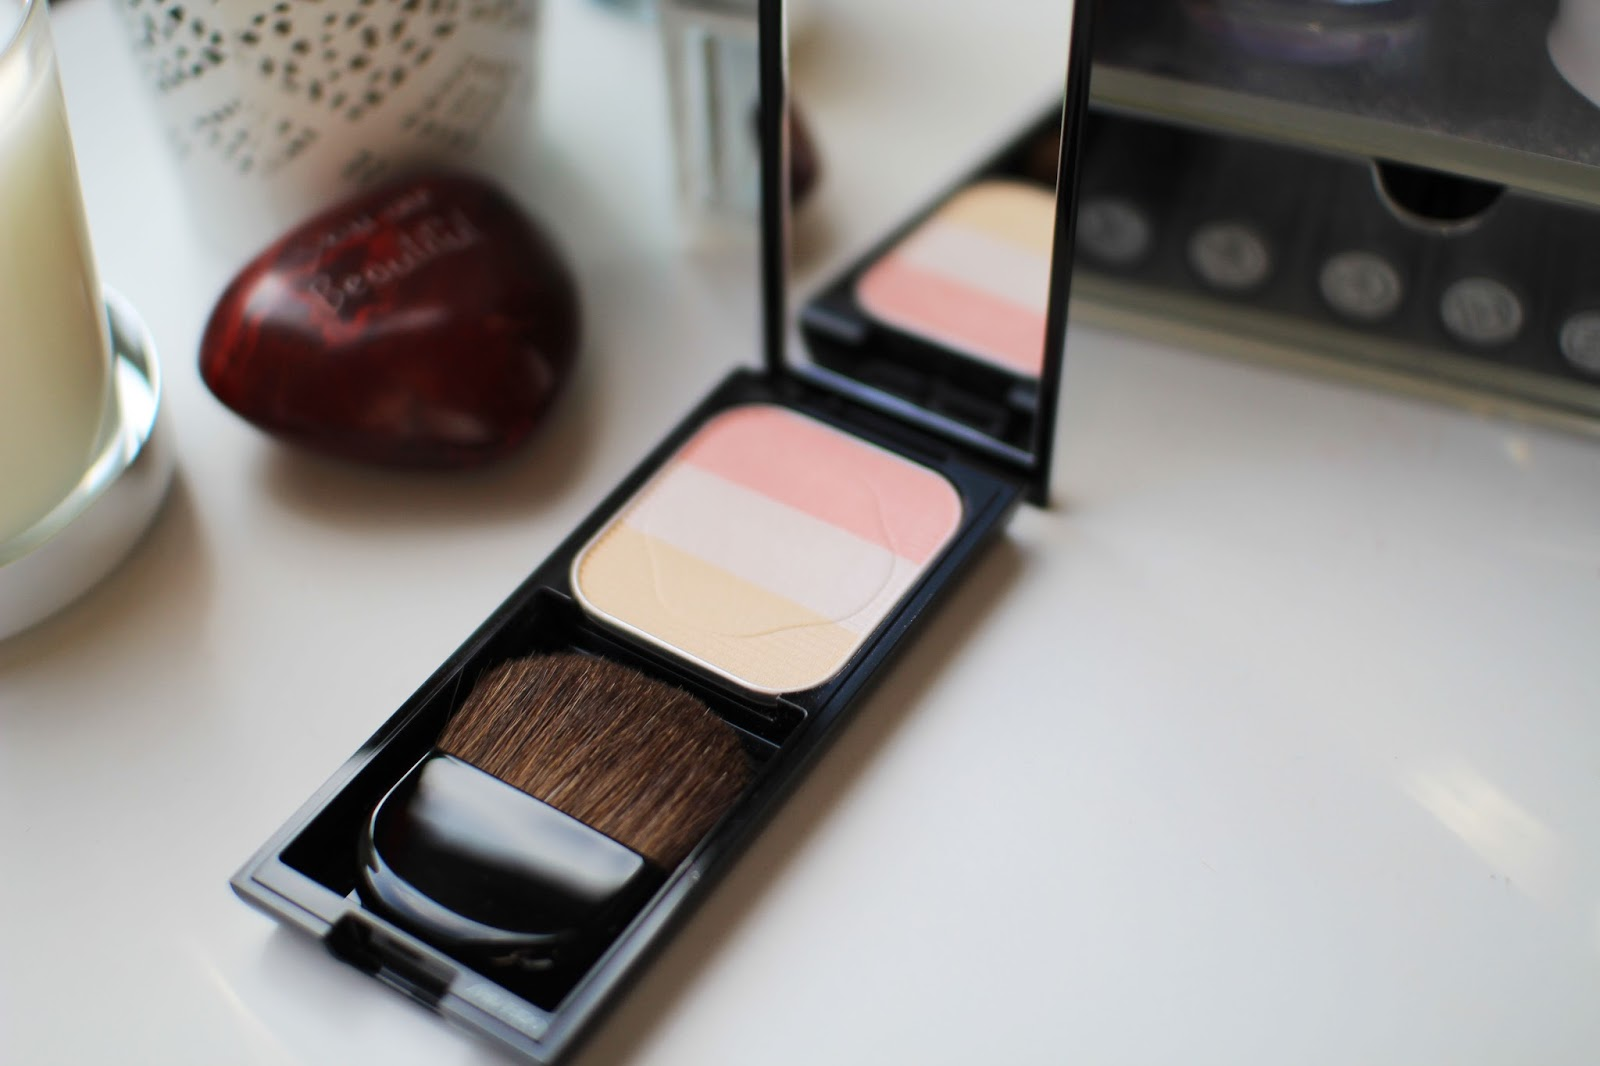 The Shiseido Trio Enhancing Blush